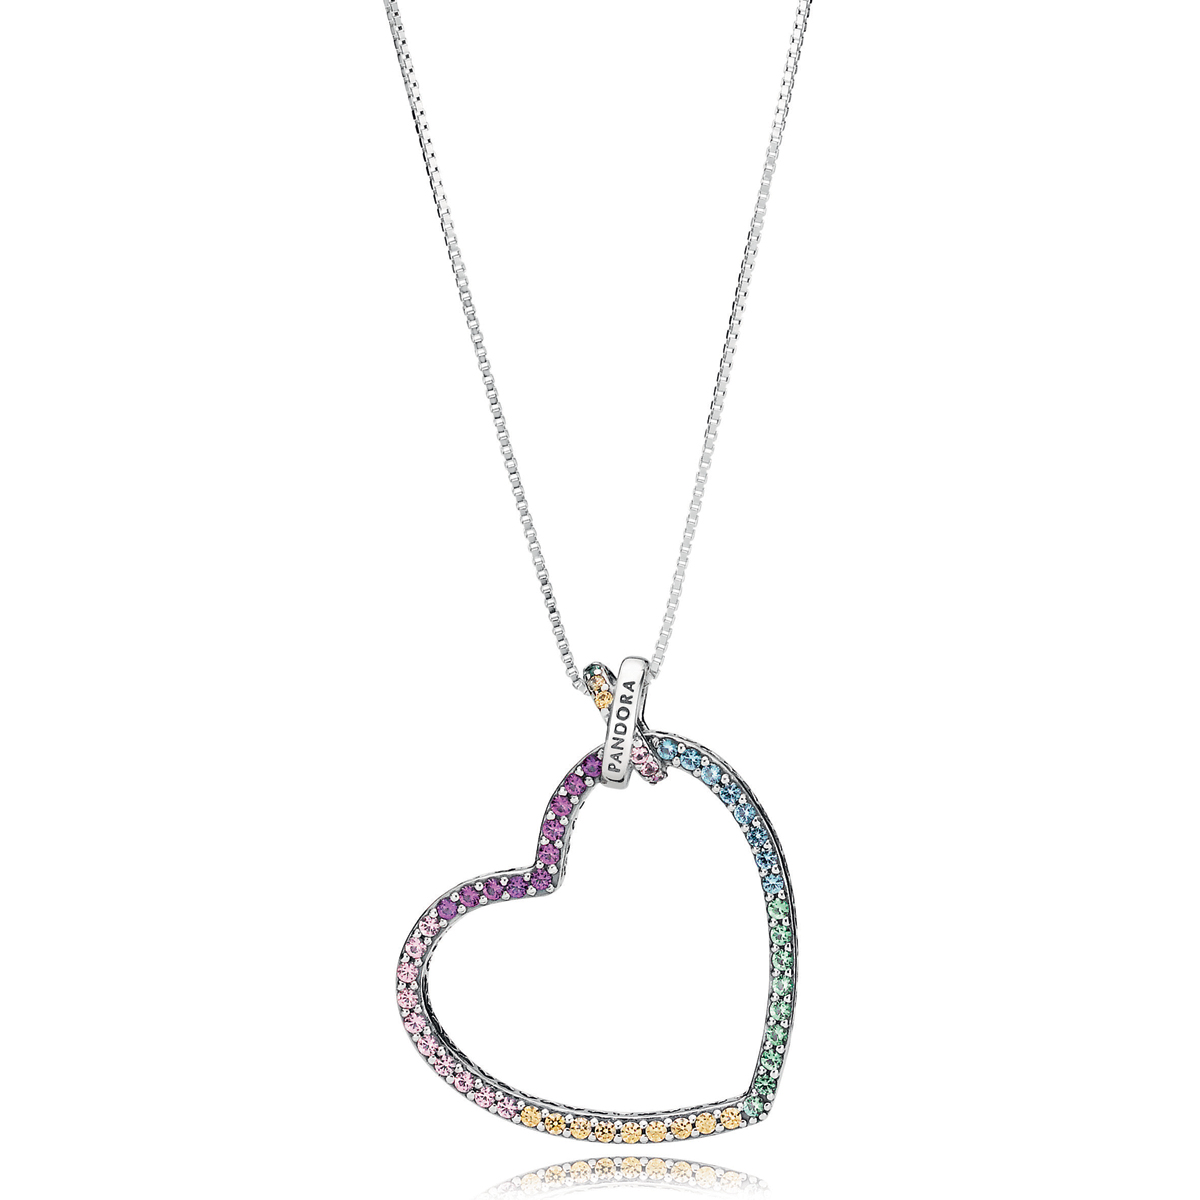 detailmain ct main diamond phab jewellery tw white blue nile necklace in gold heart